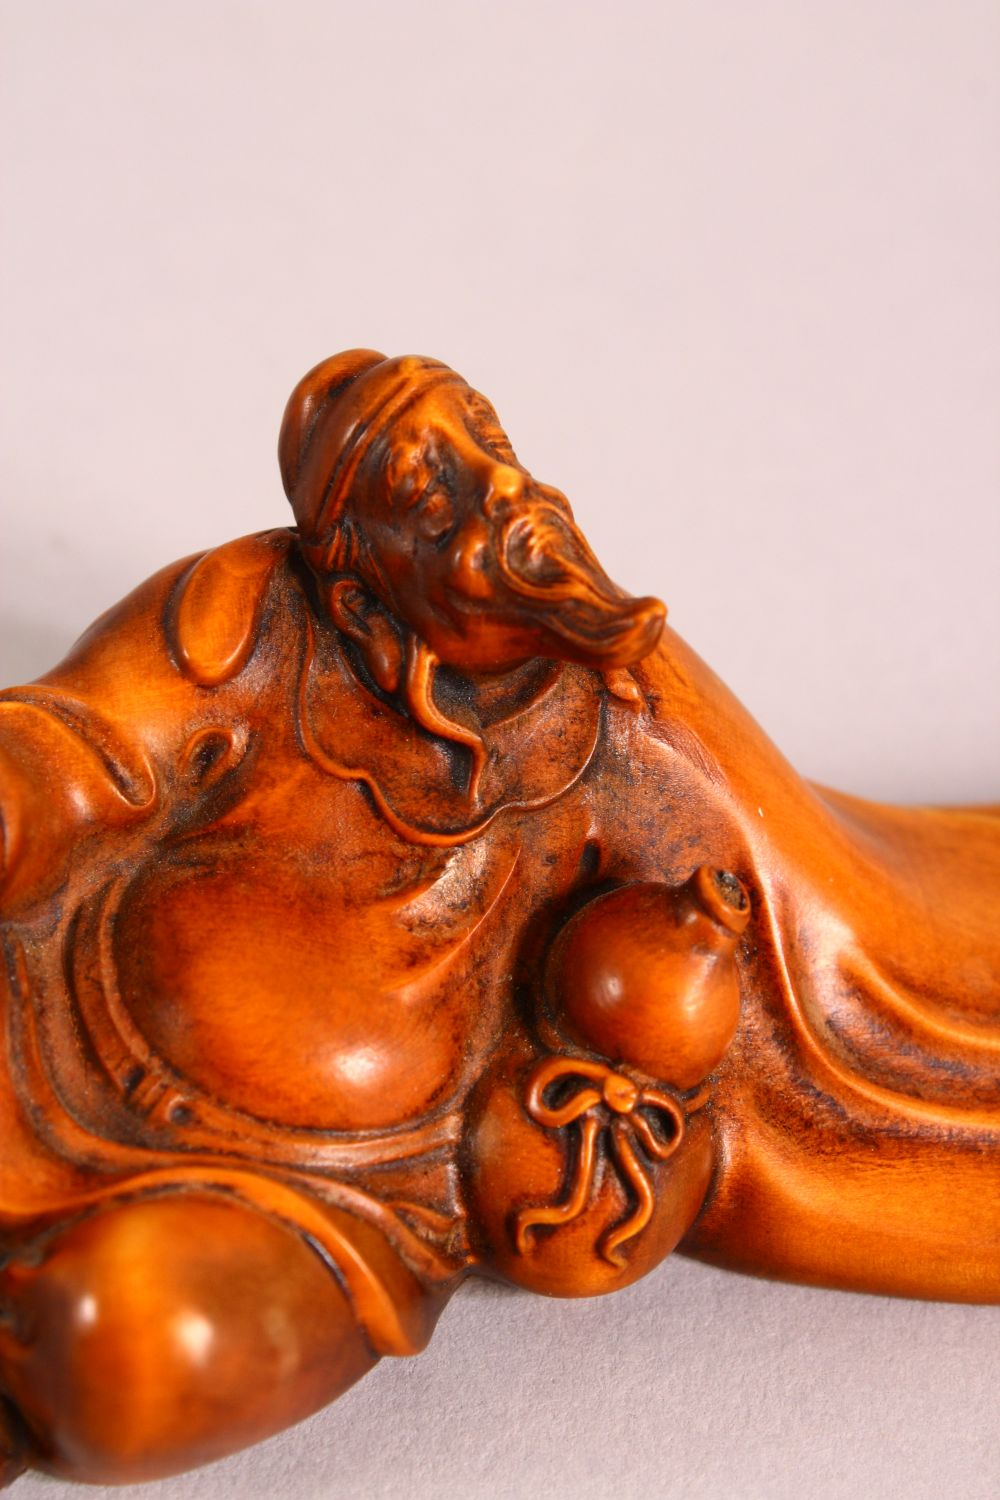 50A CHINESE CARVED WOOD FIGURE OF ROHAN OR IMMORTAL, seated with a drinking vessel, 20cm - Image 3 of 5